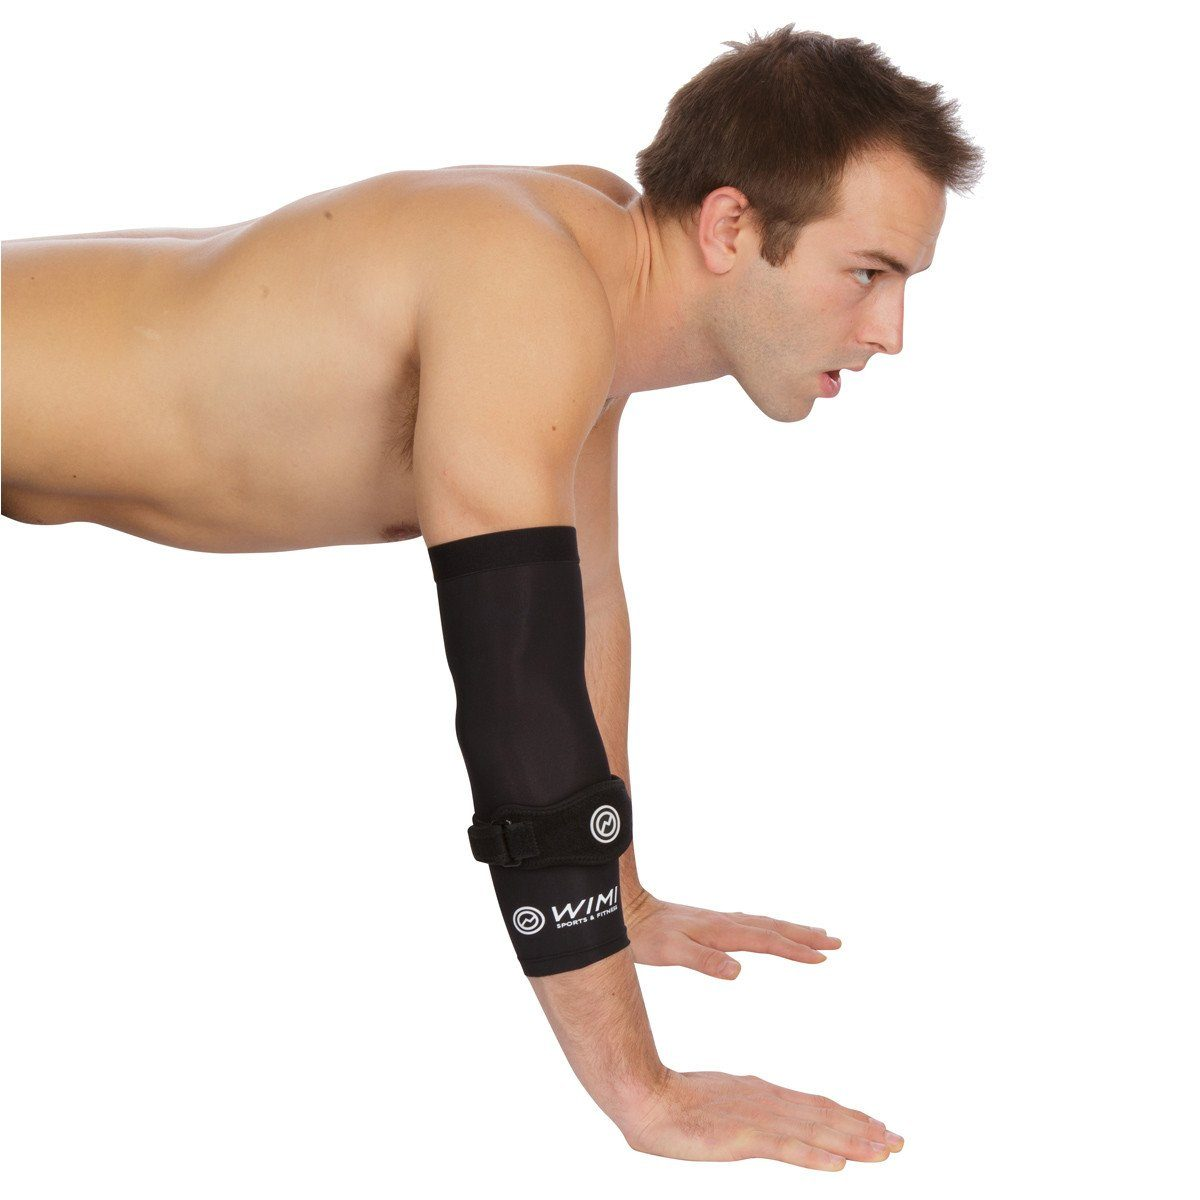 Tennis Elbow Brace & Compression Elbow Sleeve - Complete Solution Pack